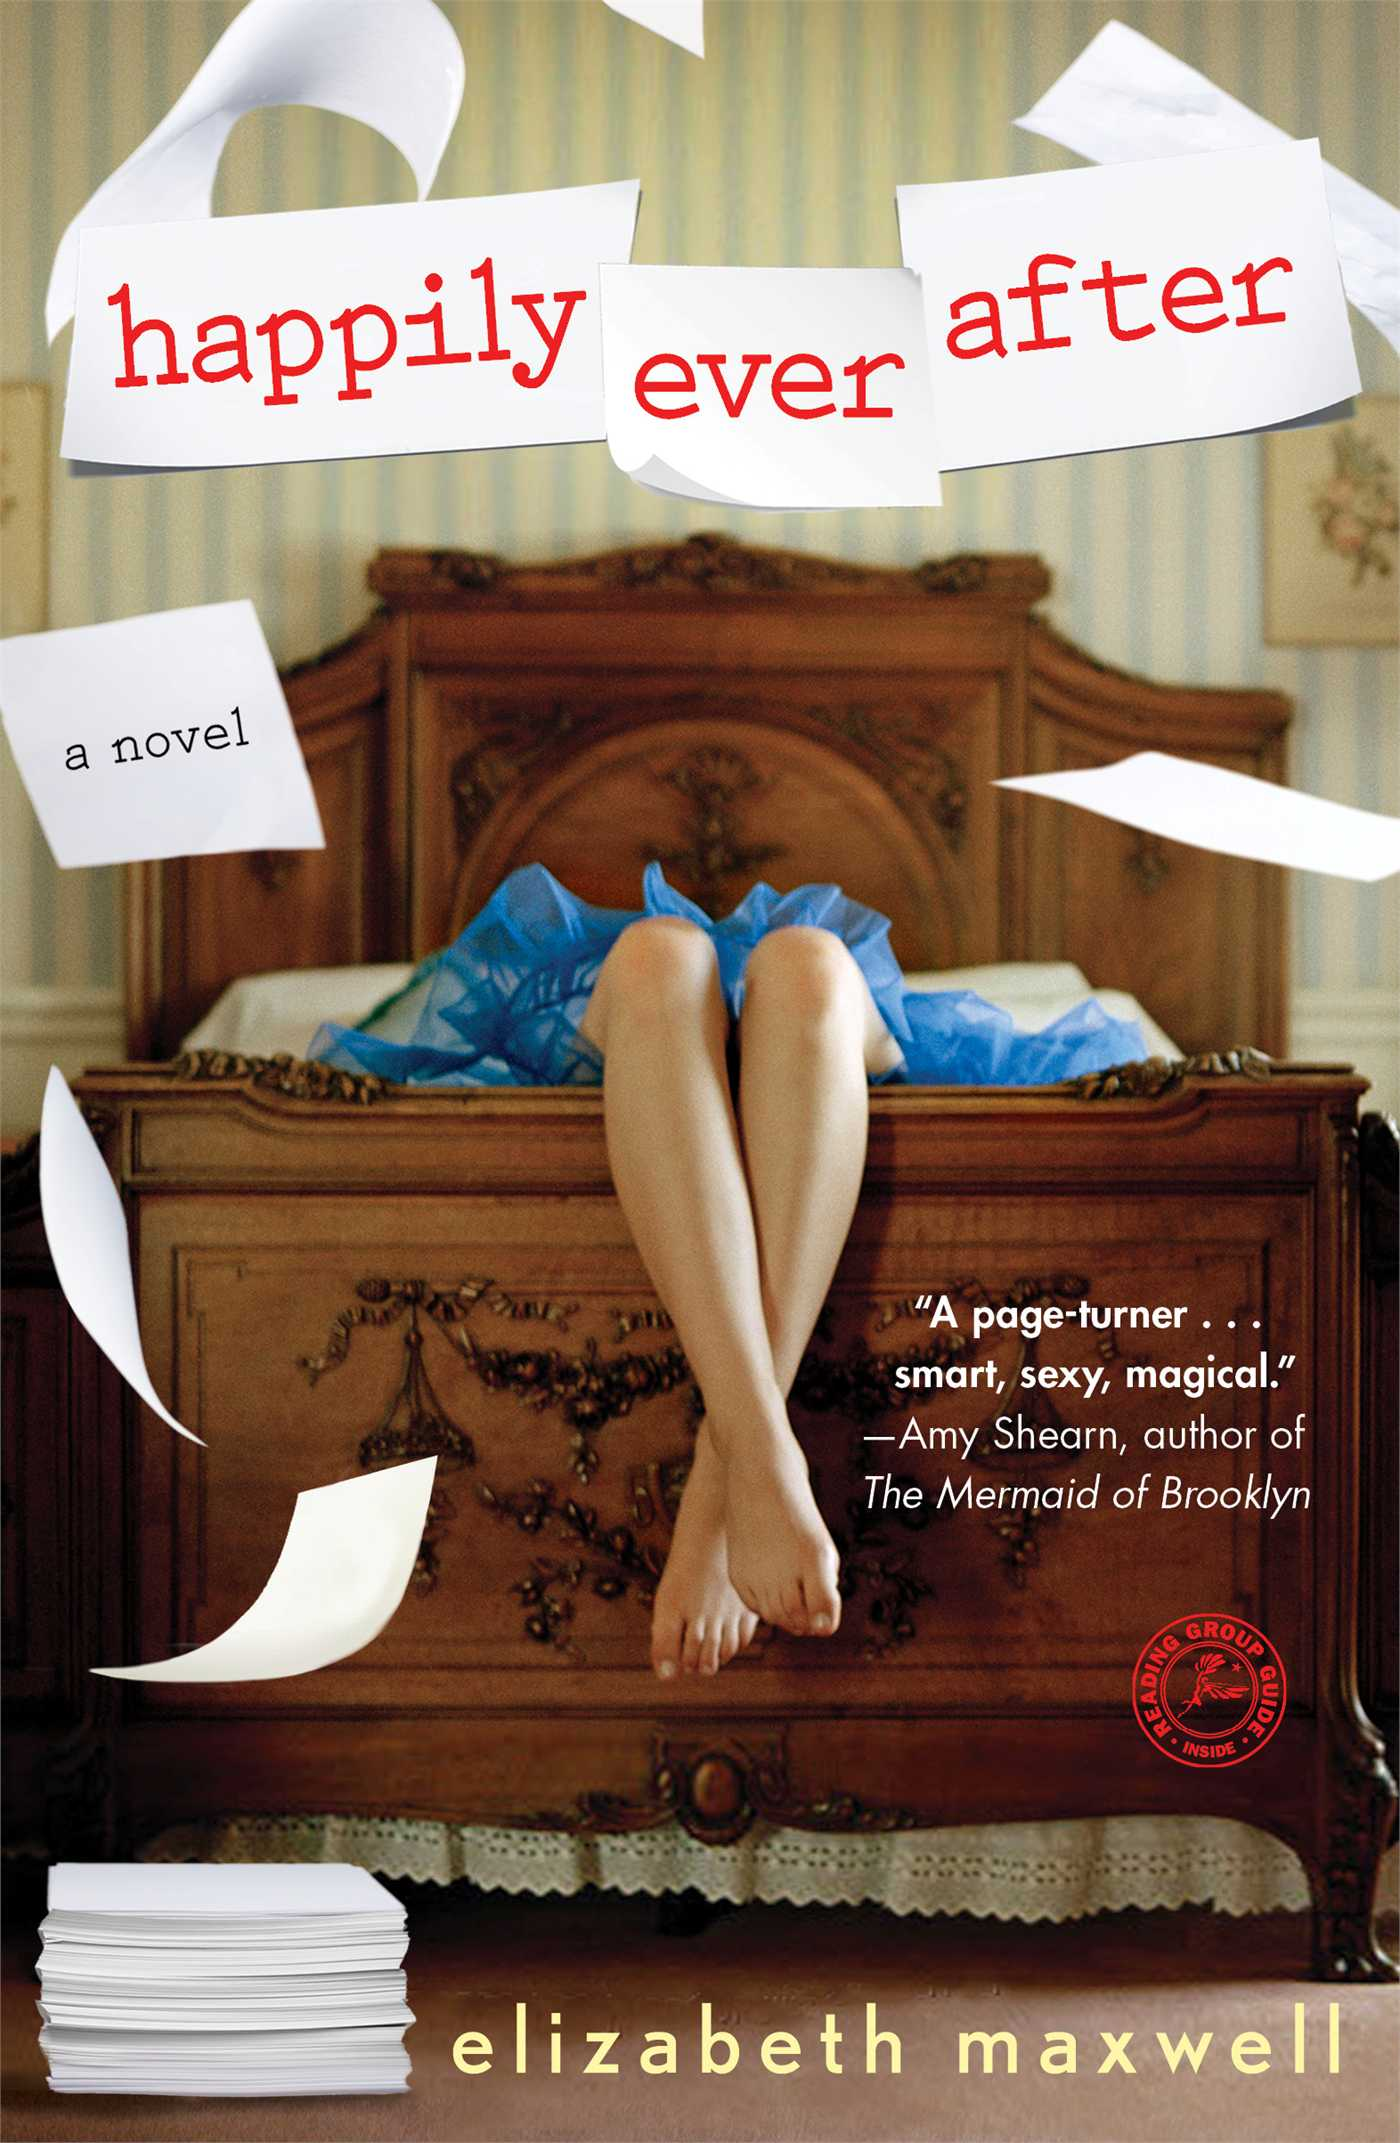 Happily ever after 9781476732664 hr